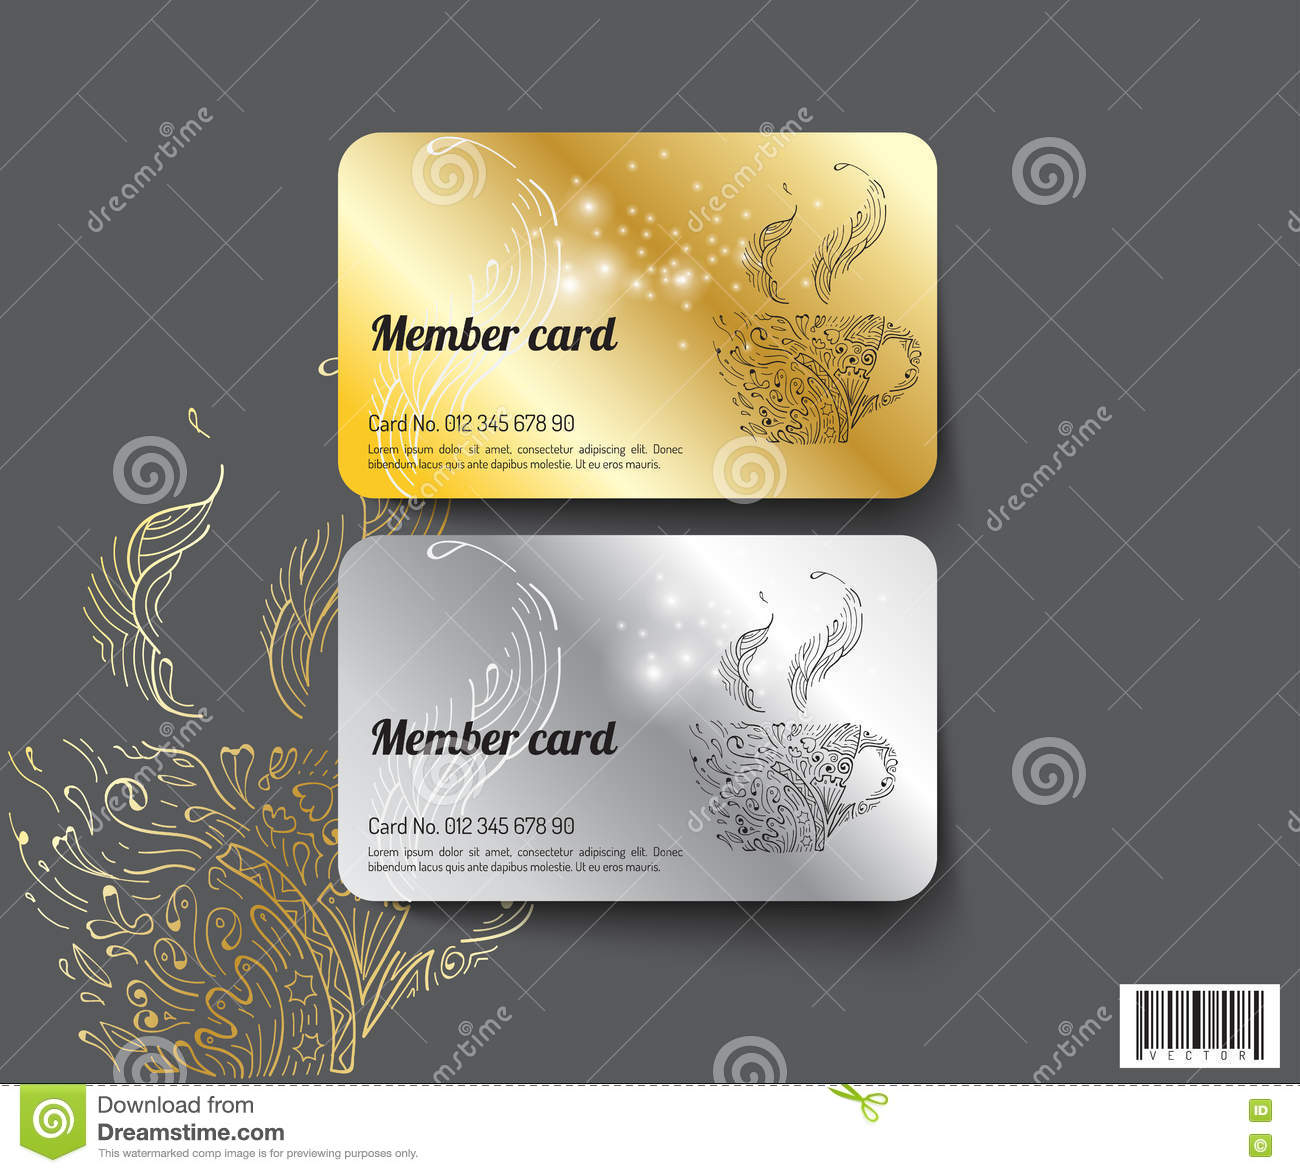 Template Design Member Card. Vector File. Exclusive, Plastic.  Membership Card Template